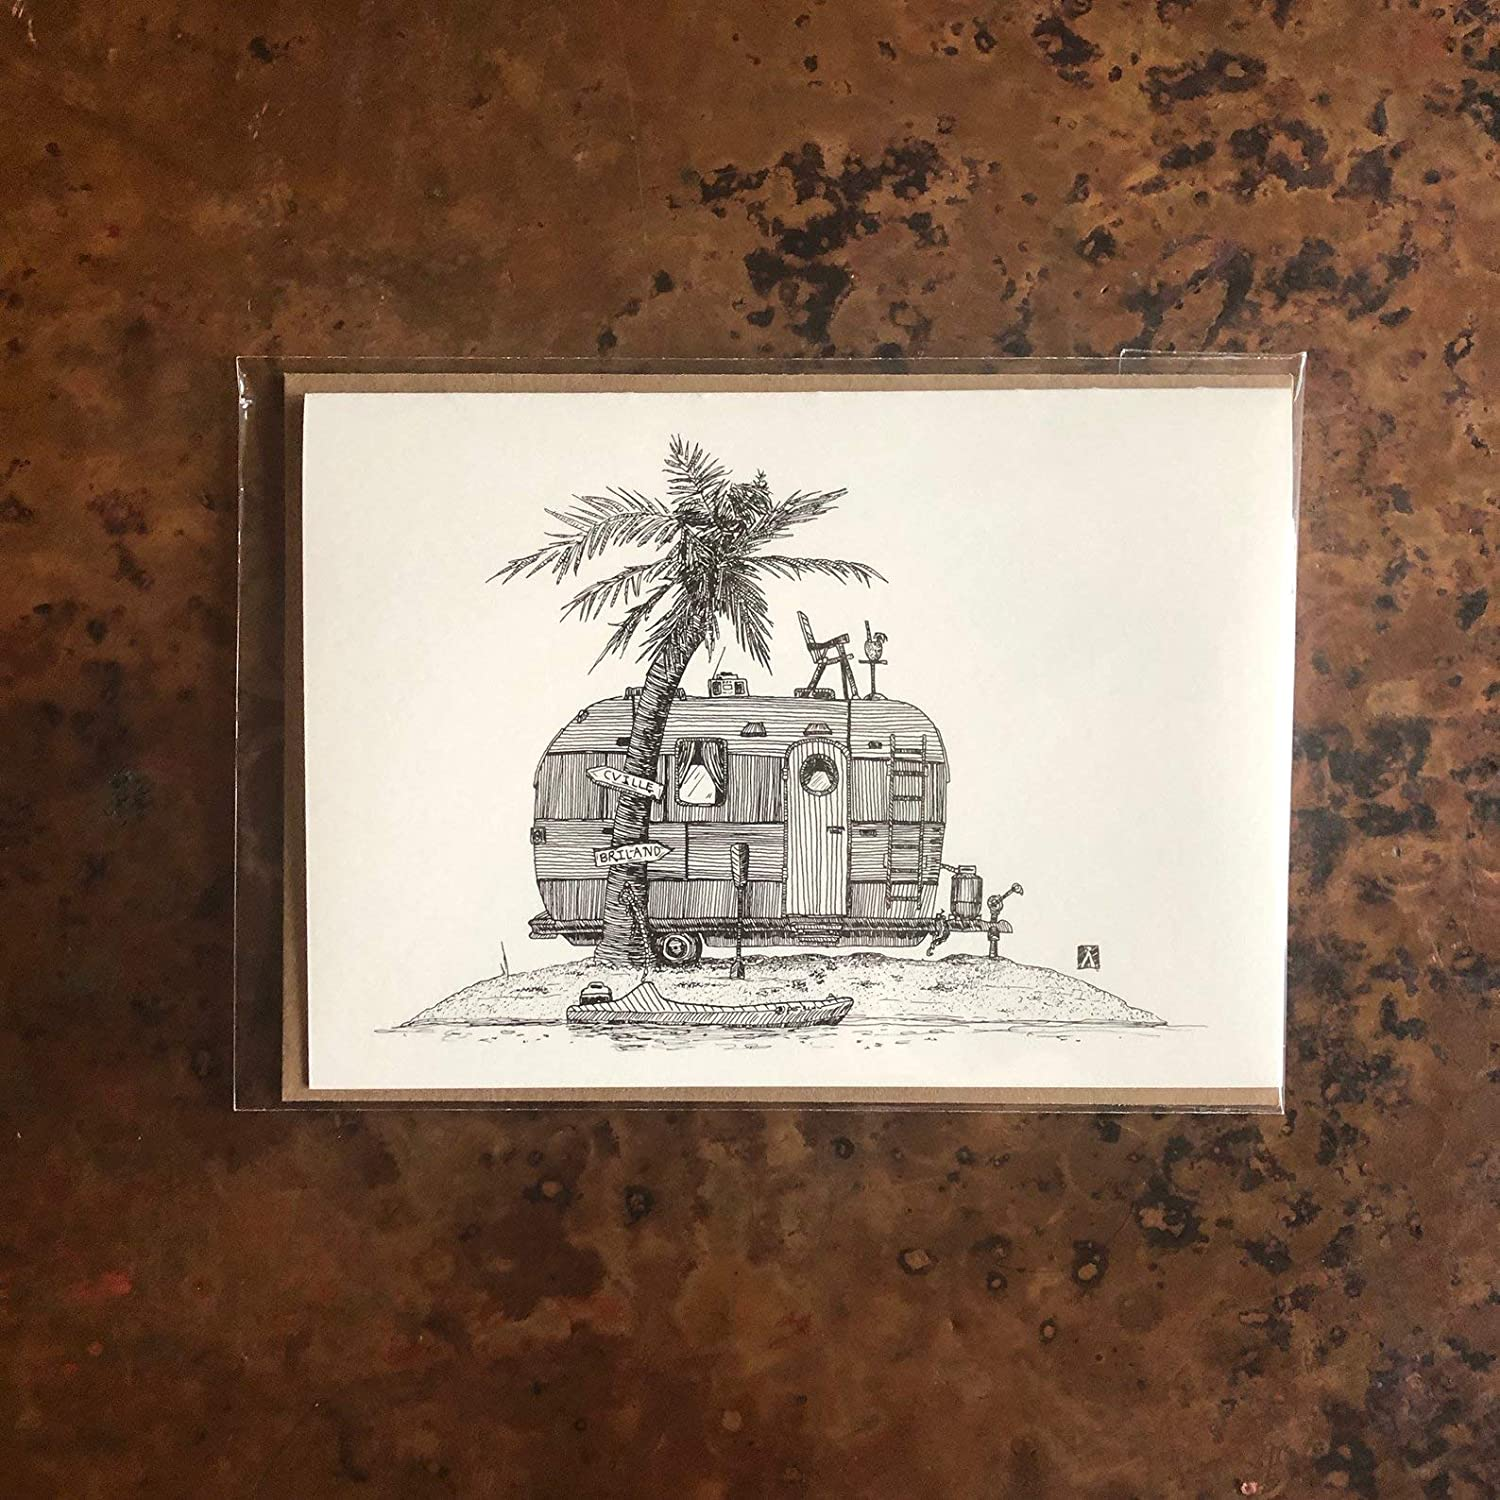 BellavanceInk Greeting Card With Pen /& Ink Drawing of Vintage Trailer On An Deserted Island 5 x 7 Inches